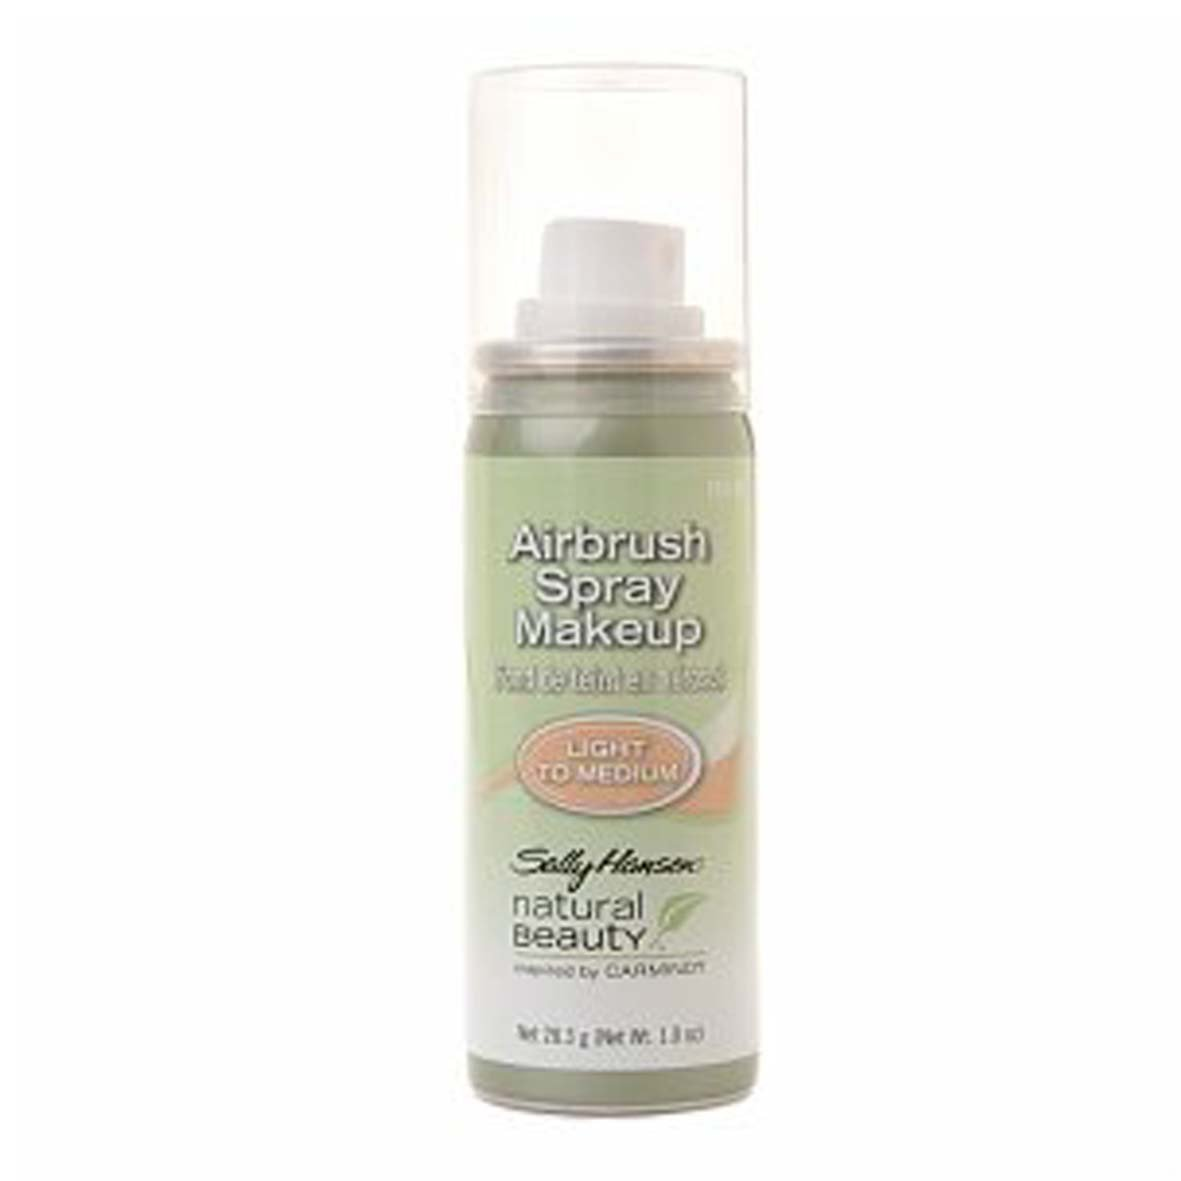 Amazon sally hansen natural beauty airbrush spray makeup amazon sally hansen natural beauty airbrush spray makeup light to medium inspired by carmindy discontinued shade foundation makeup beauty baditri Choice Image